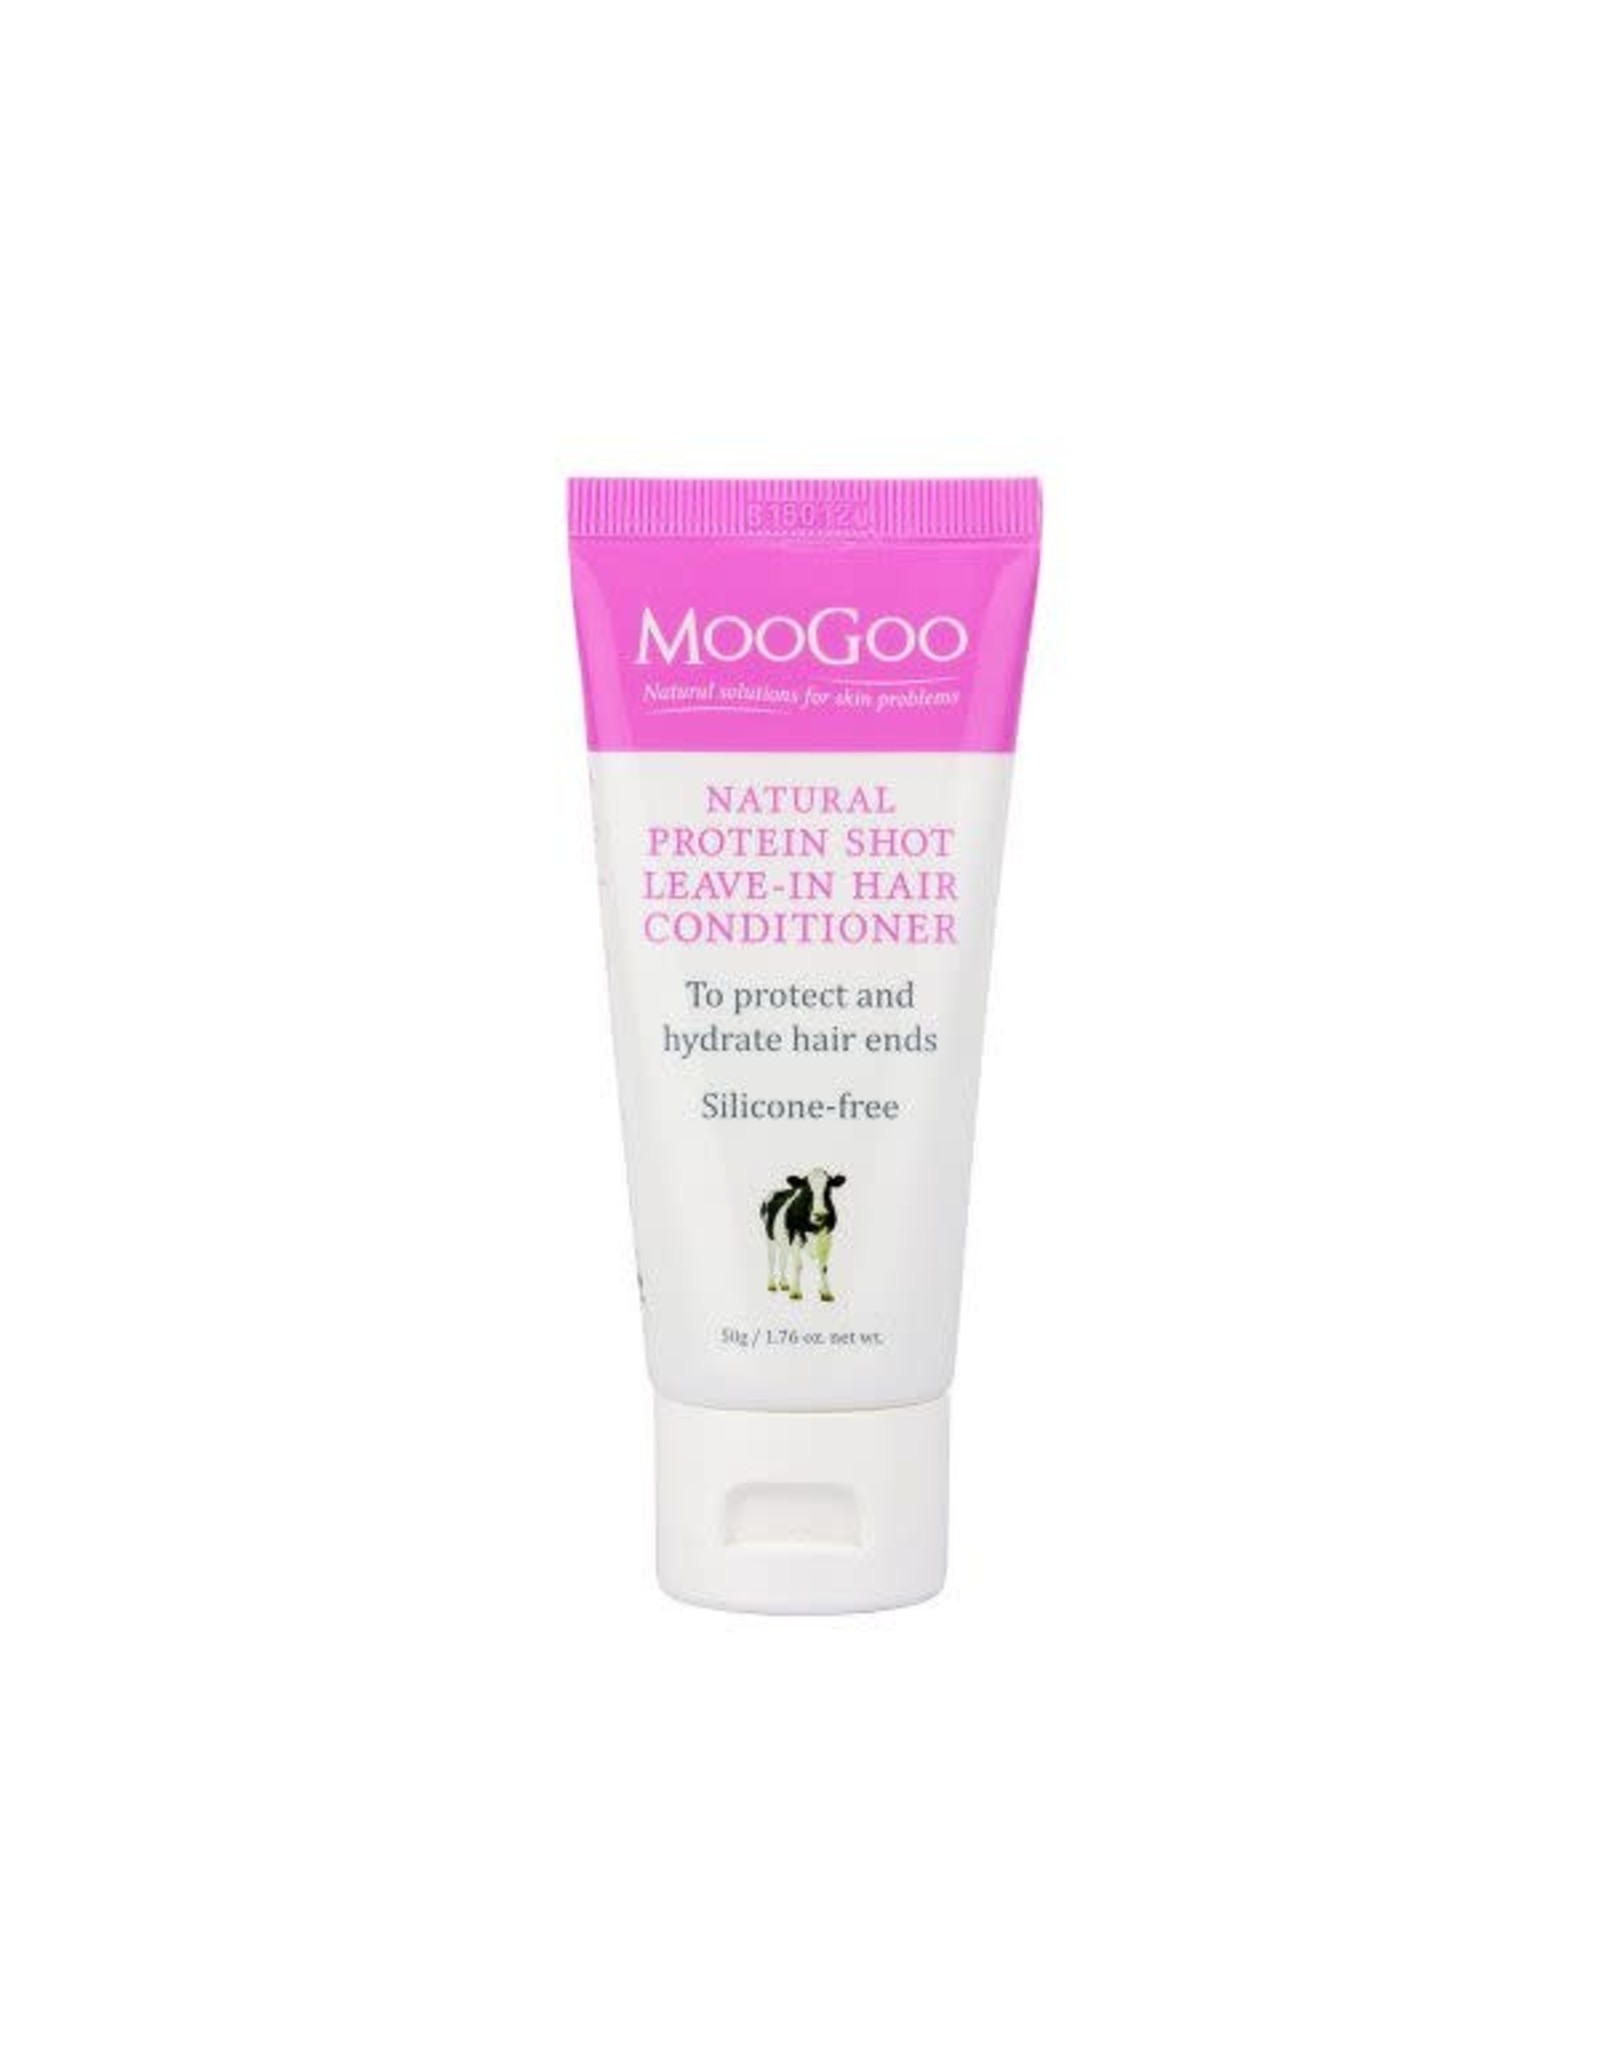 Moogoo Protein Shot Leave In Conditioner 50g